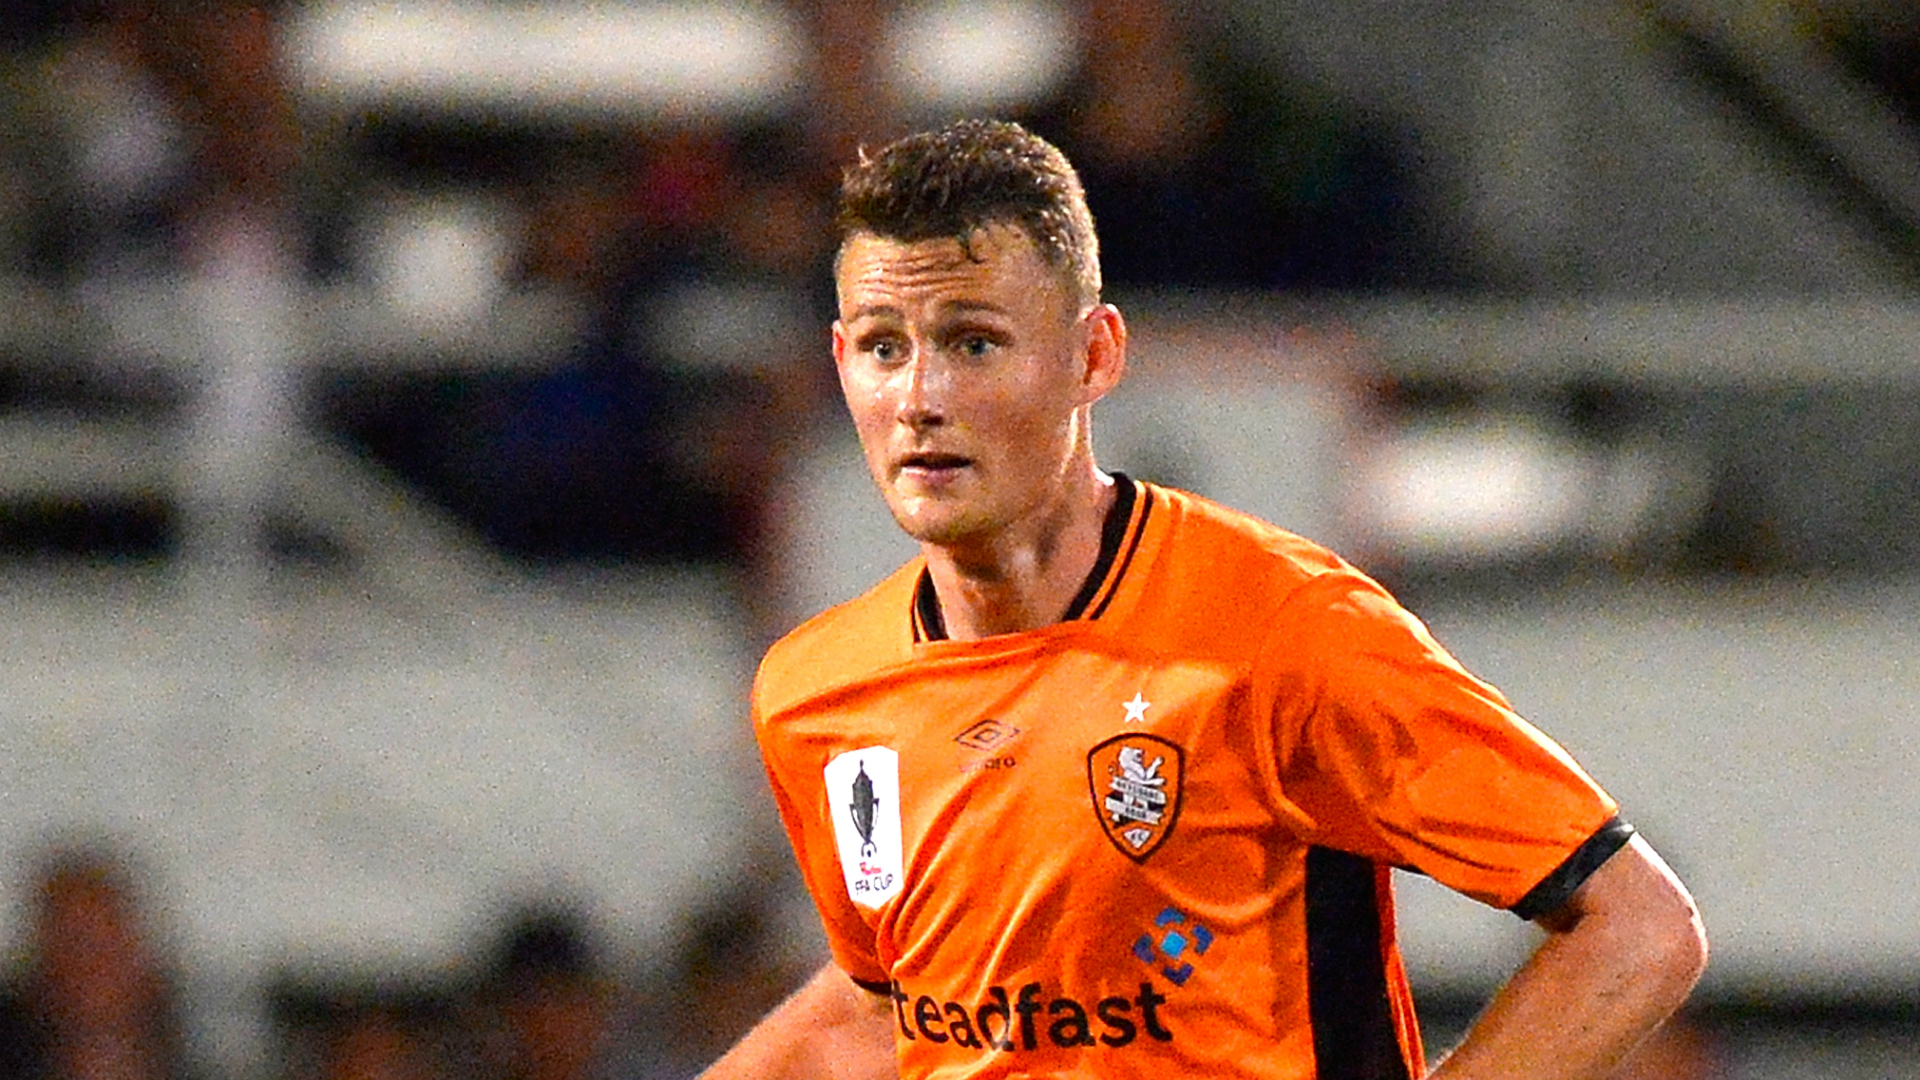 Brisbane Roar's Daniel Bowles out for whole season with knee injury